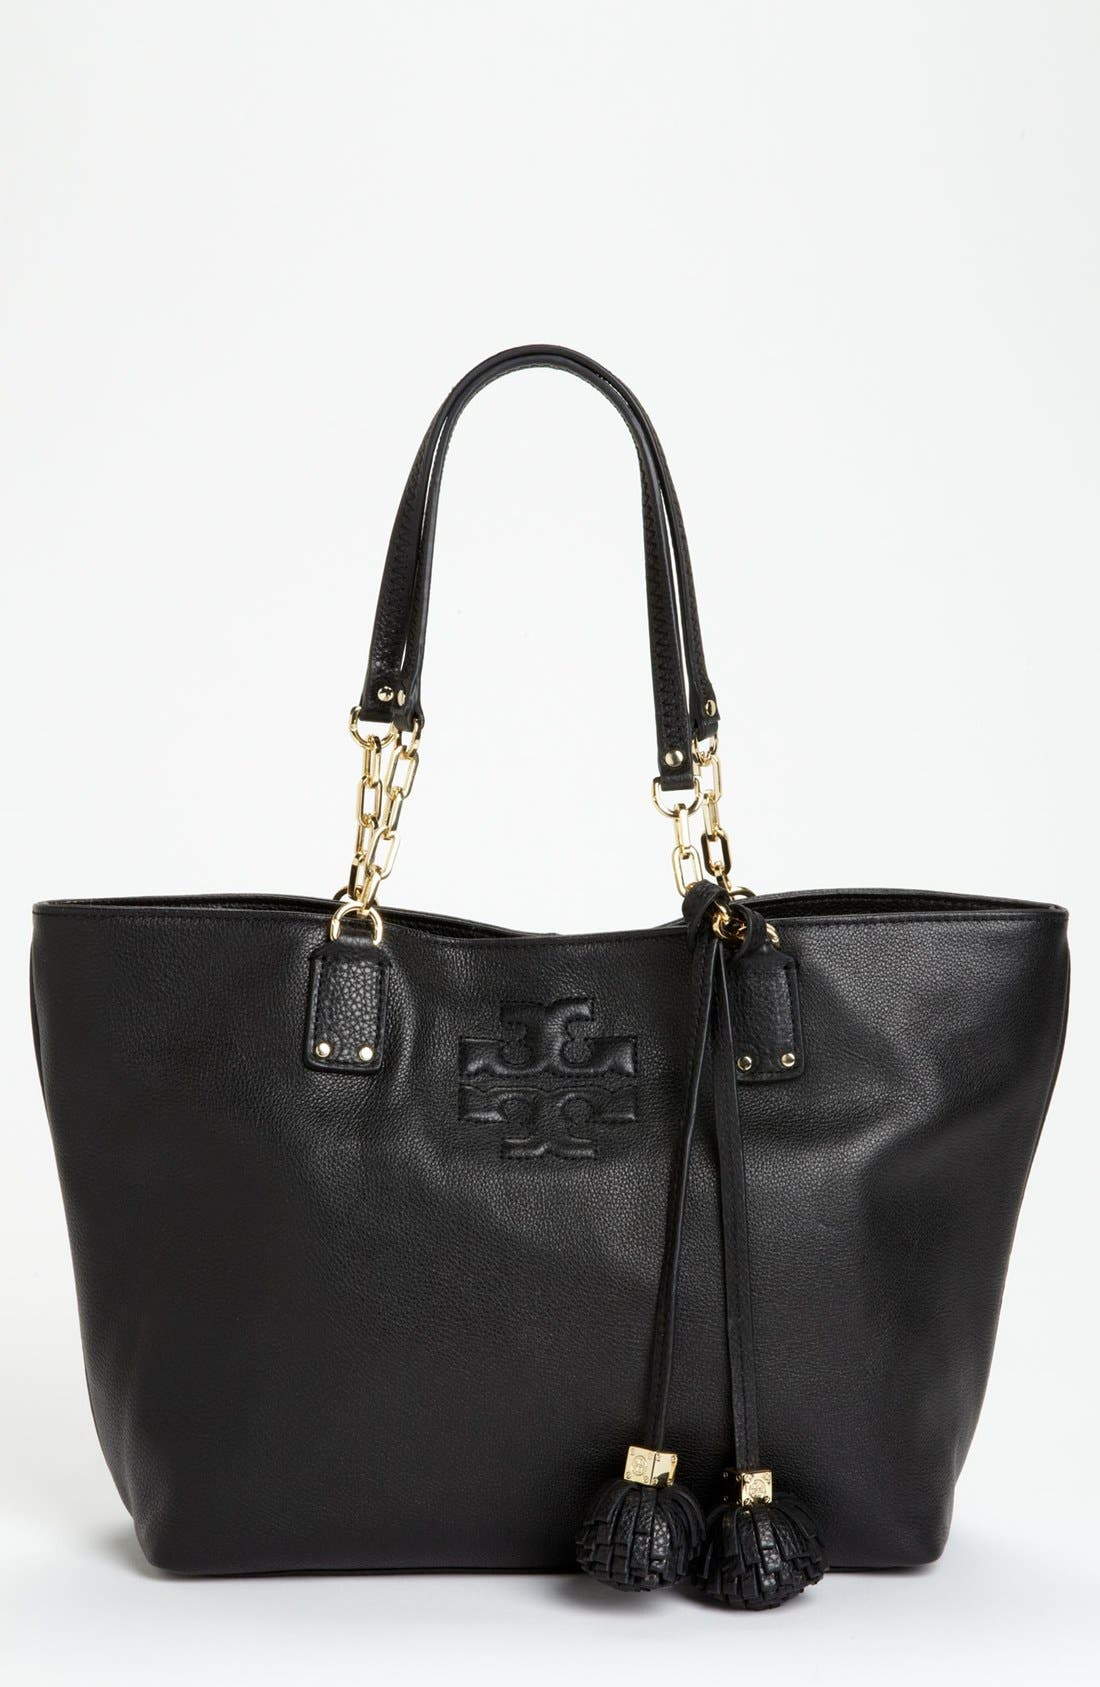 Main Image - Tory Burch 'Thea - Small' Leather Tote